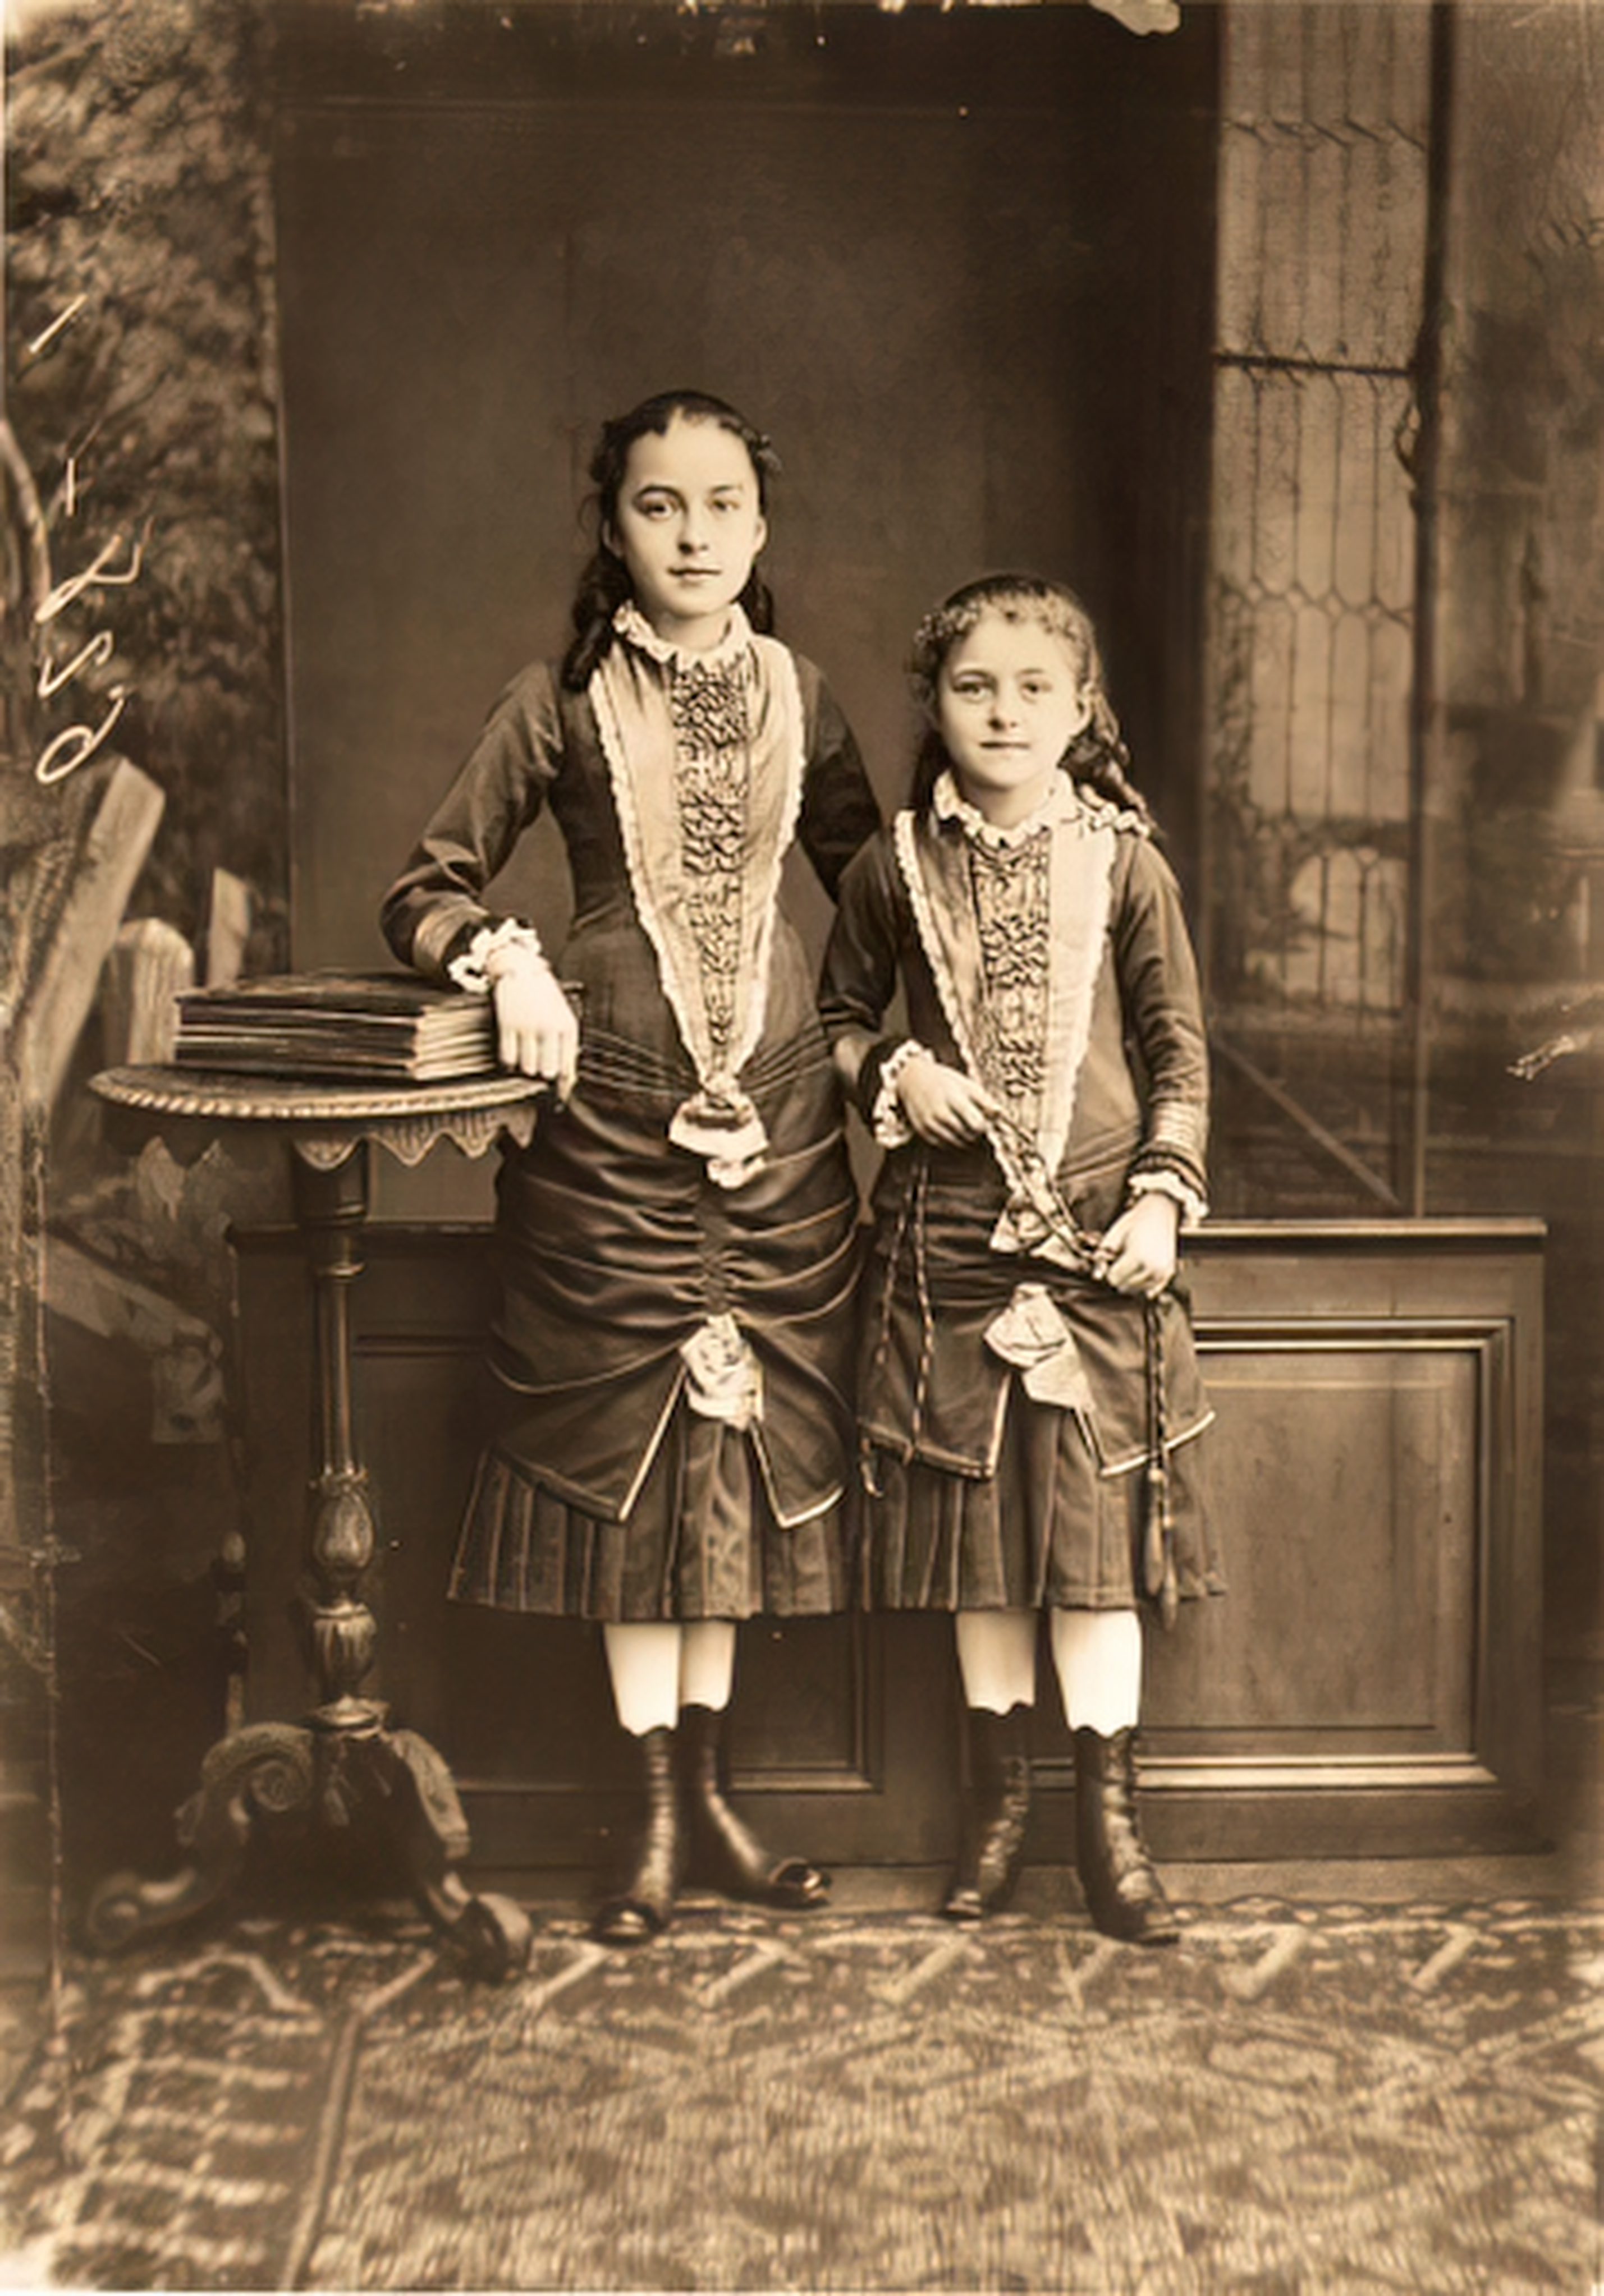 St. Thérèse of Lisieux as a child in 1881